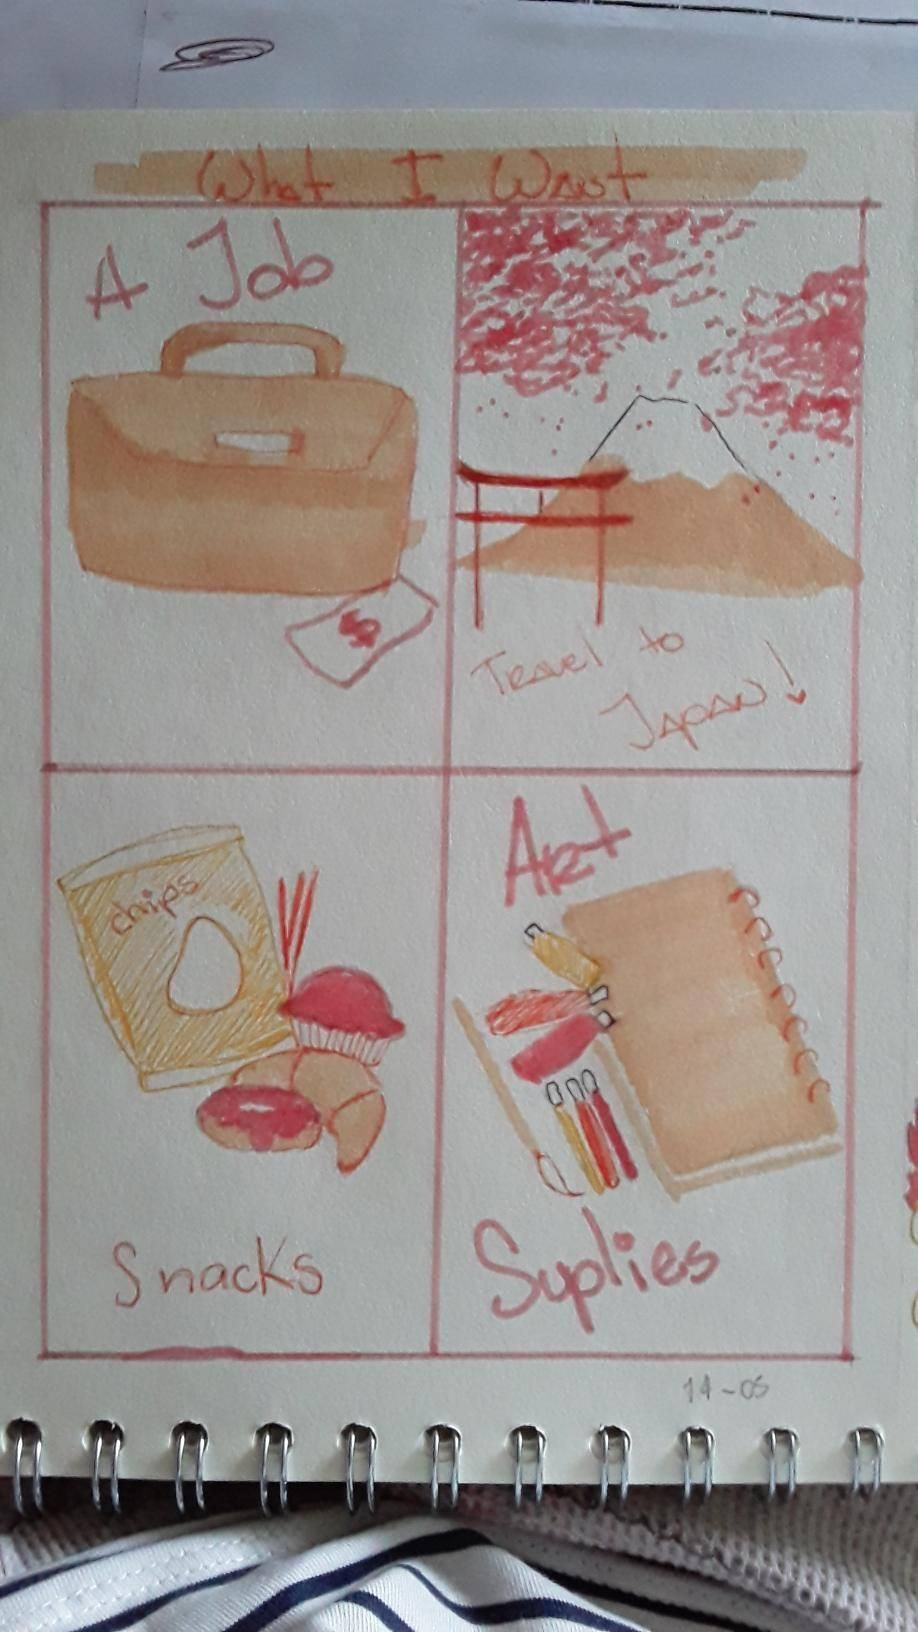 My Visual Journal - image 3 - student project